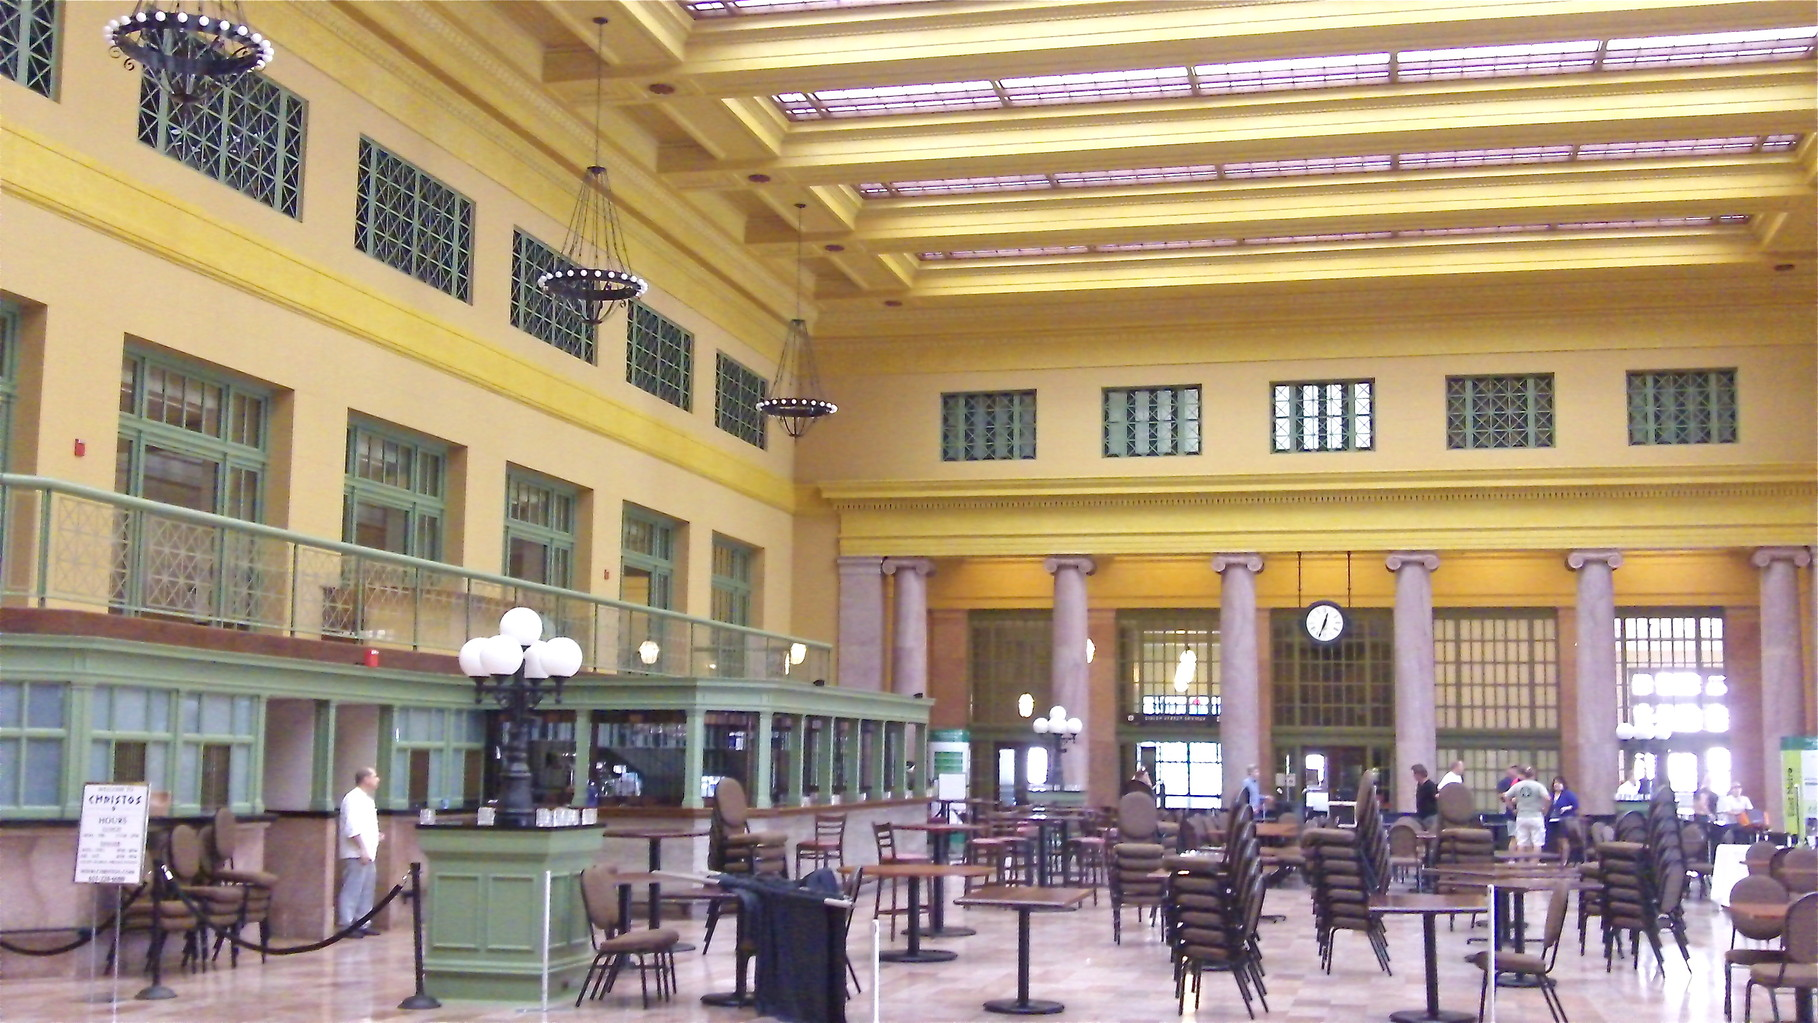 Inside Union Depot, near the Jazz Festival